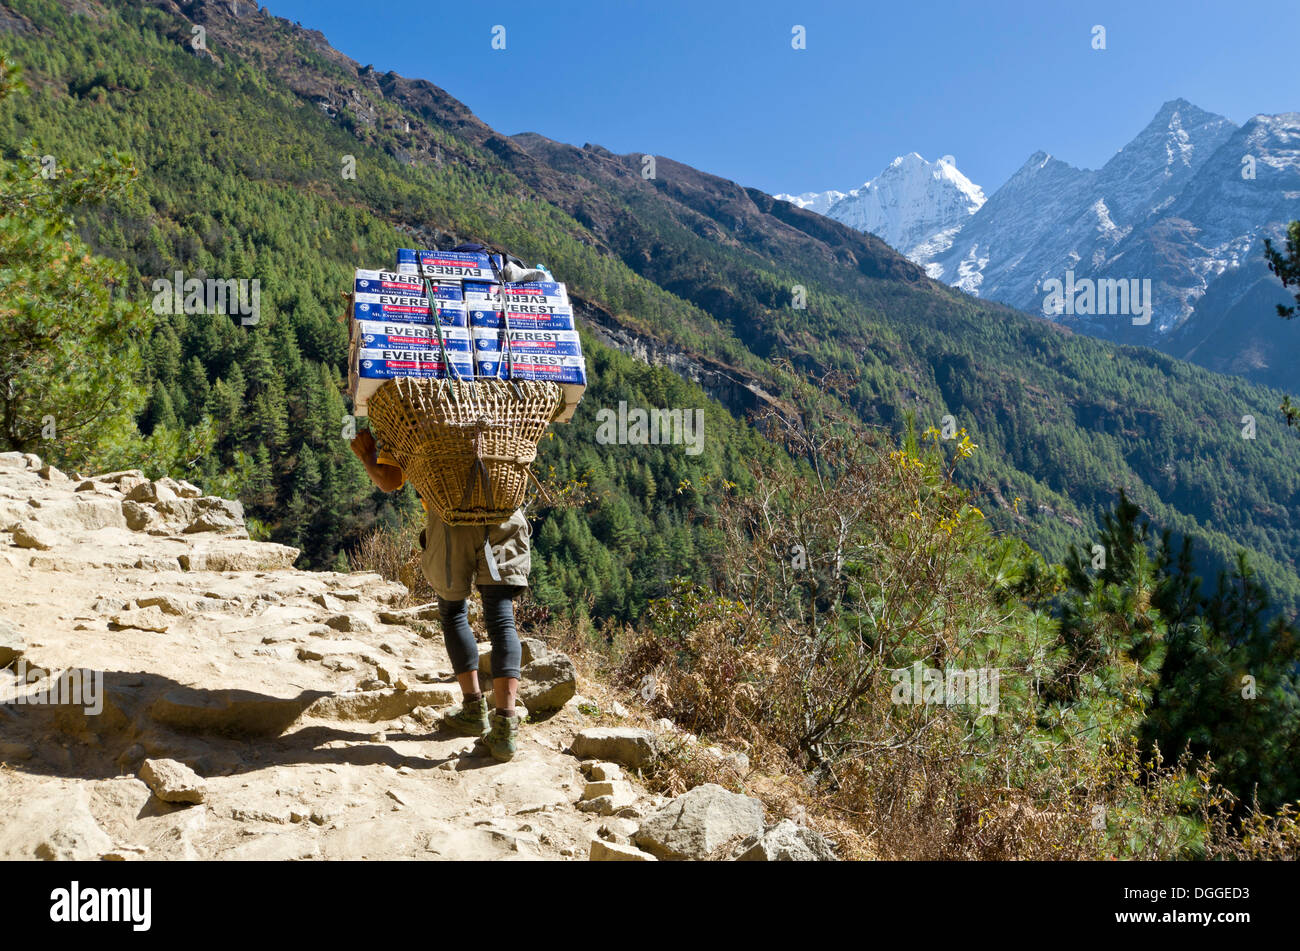 Porter carrying more than 100 kg heavy load of beerbottles up an ascending track, Namche Bazar, Solukhumbu District - Stock Image